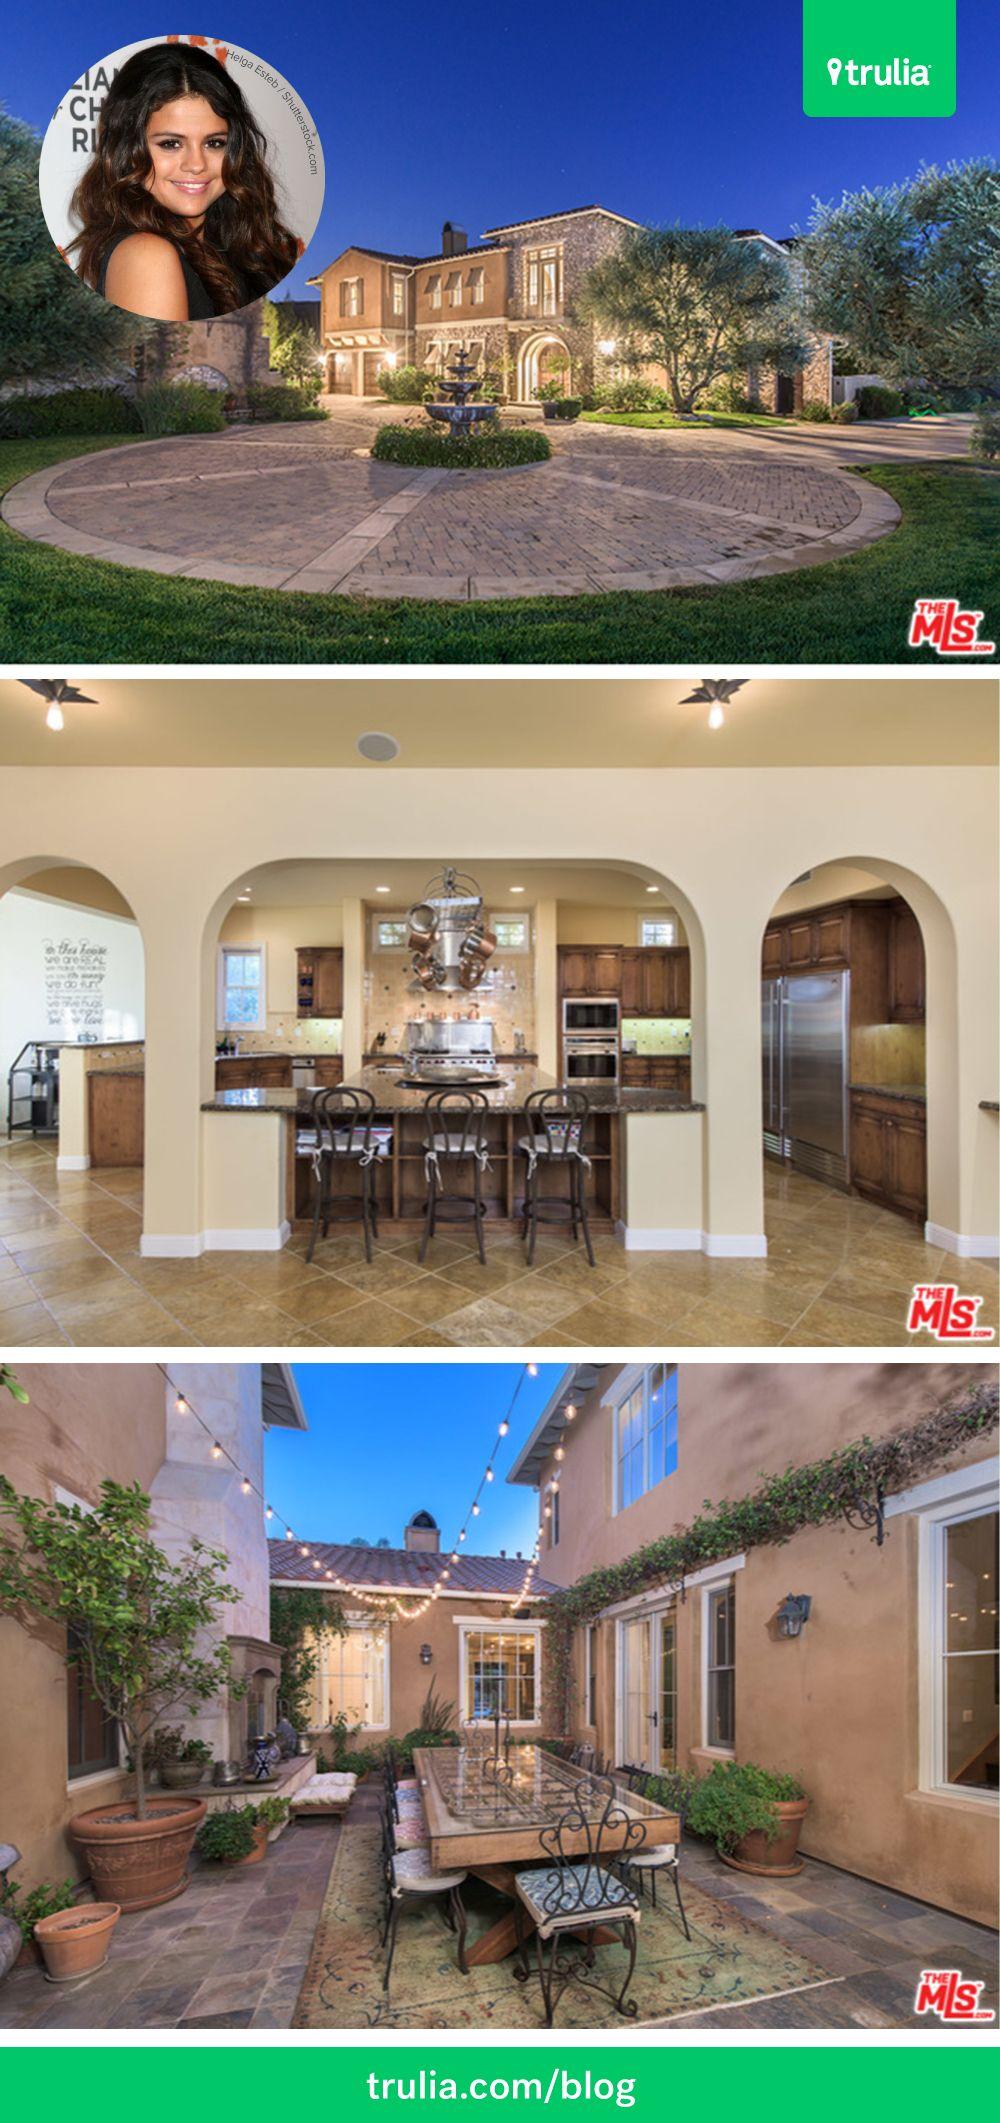 Selena Gomez Has Put Her Six Bed, Seven Bath Mediterranean Style Home